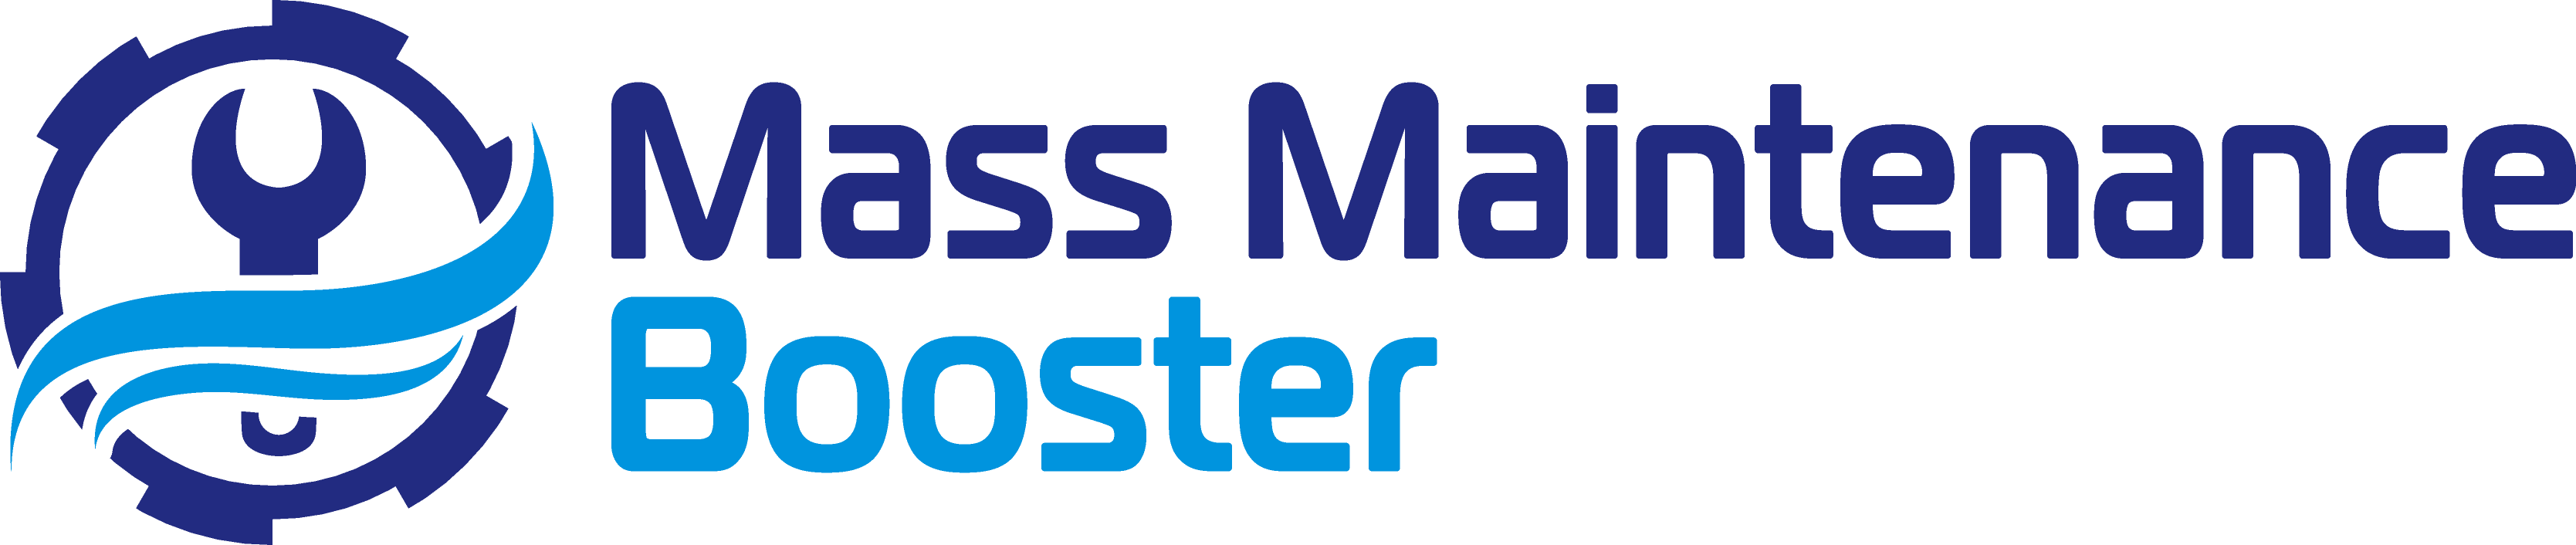 Mass Maintenance Booster - MMB